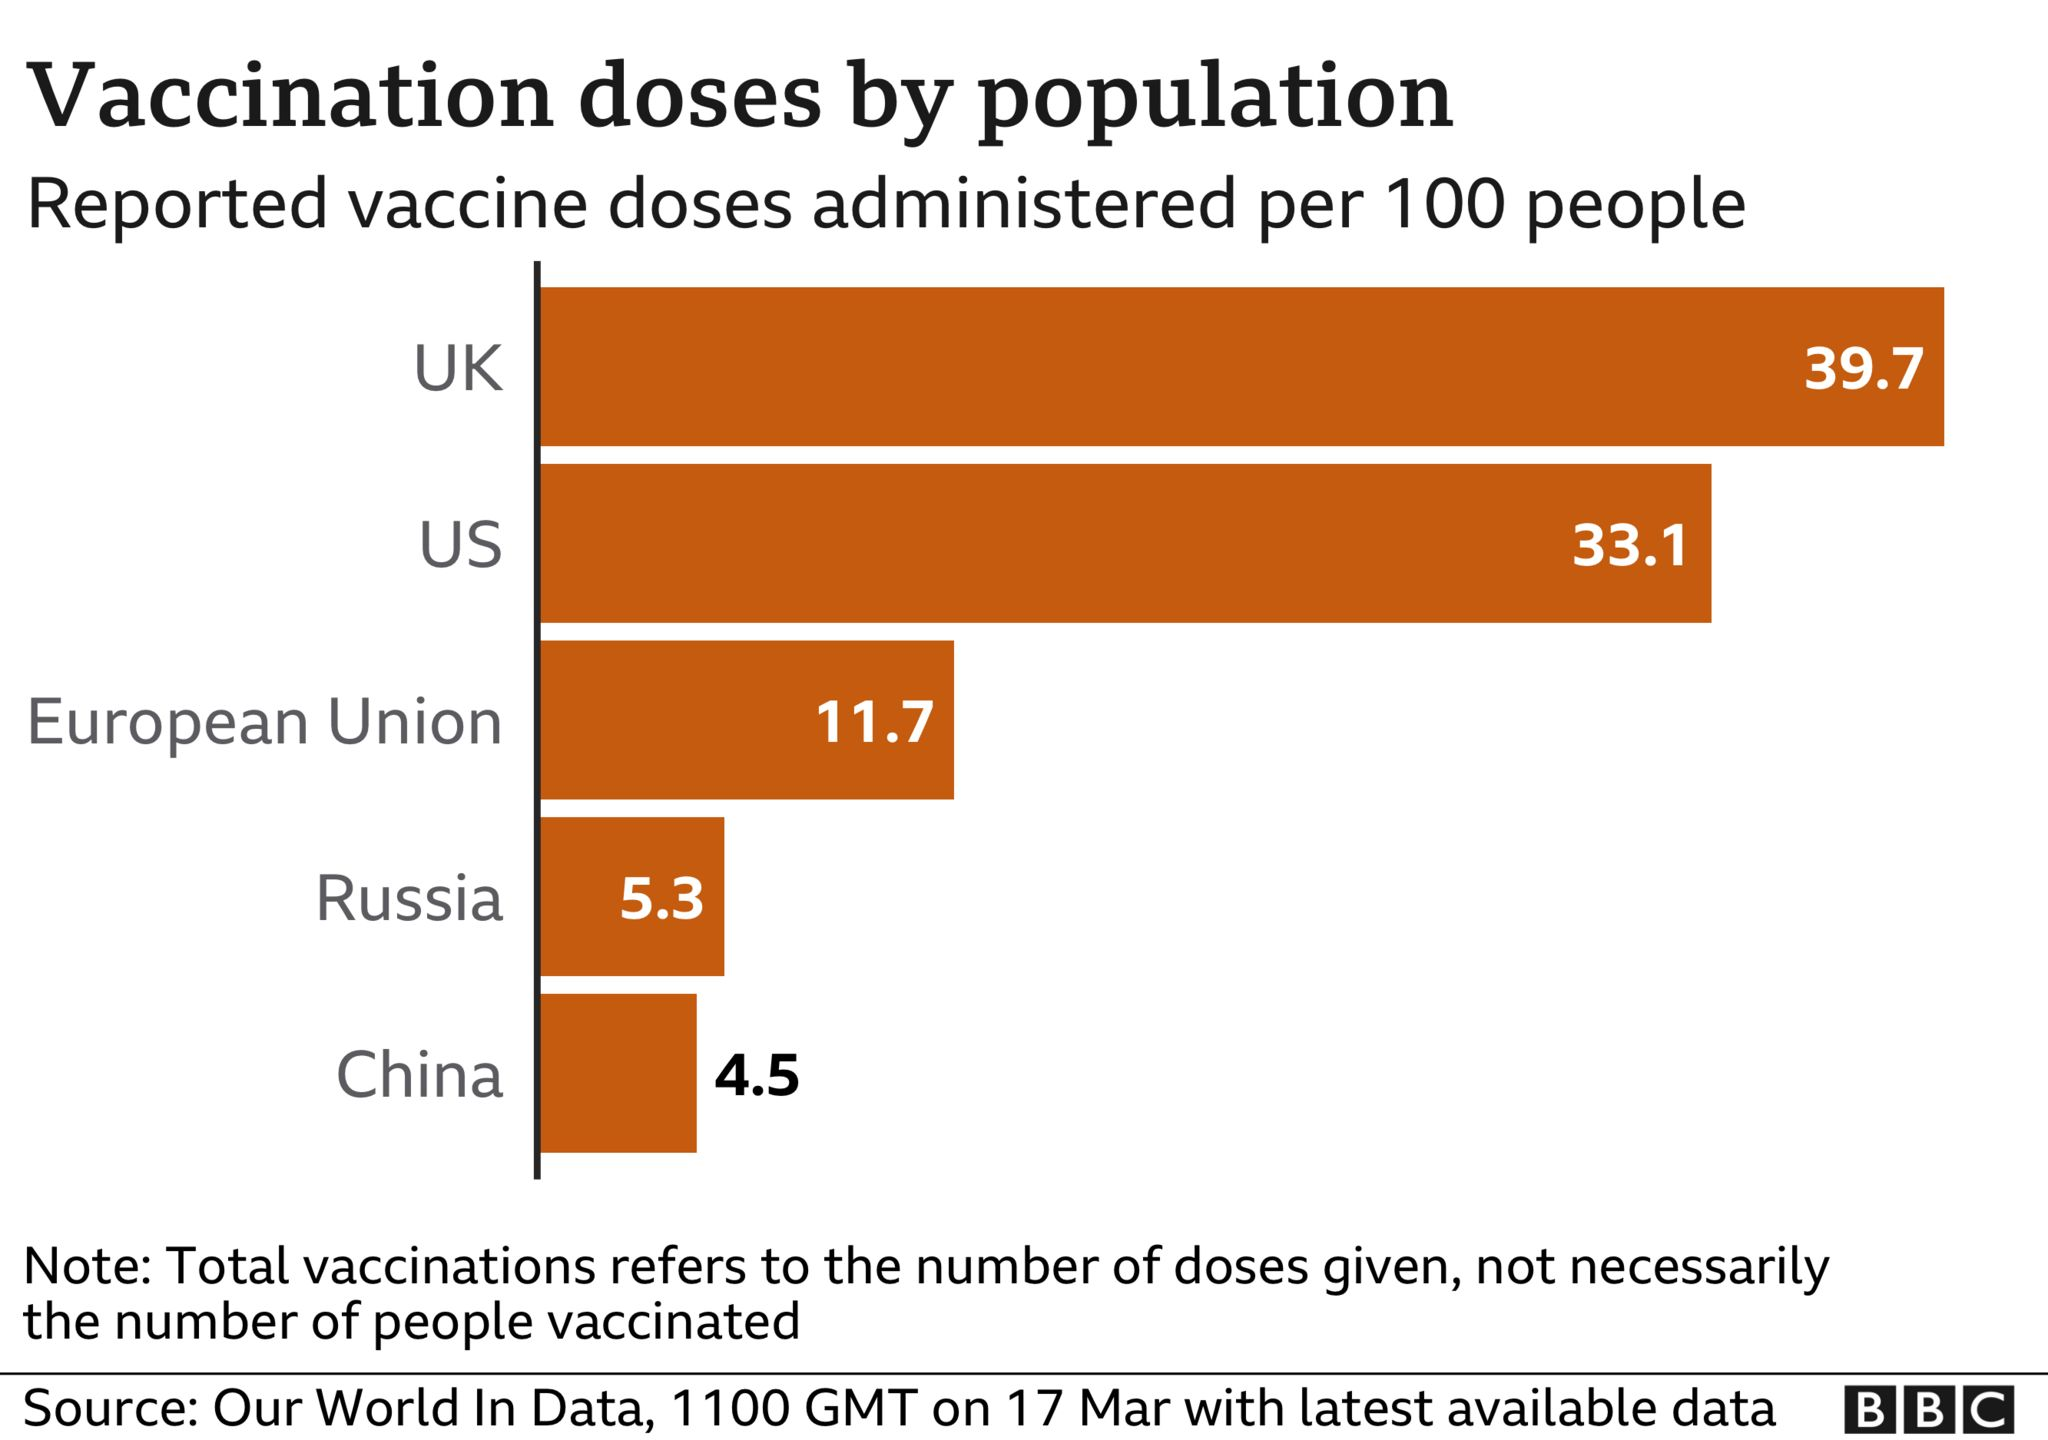 Chart showing number of doses administered in the UK, US, EU, Russia and China